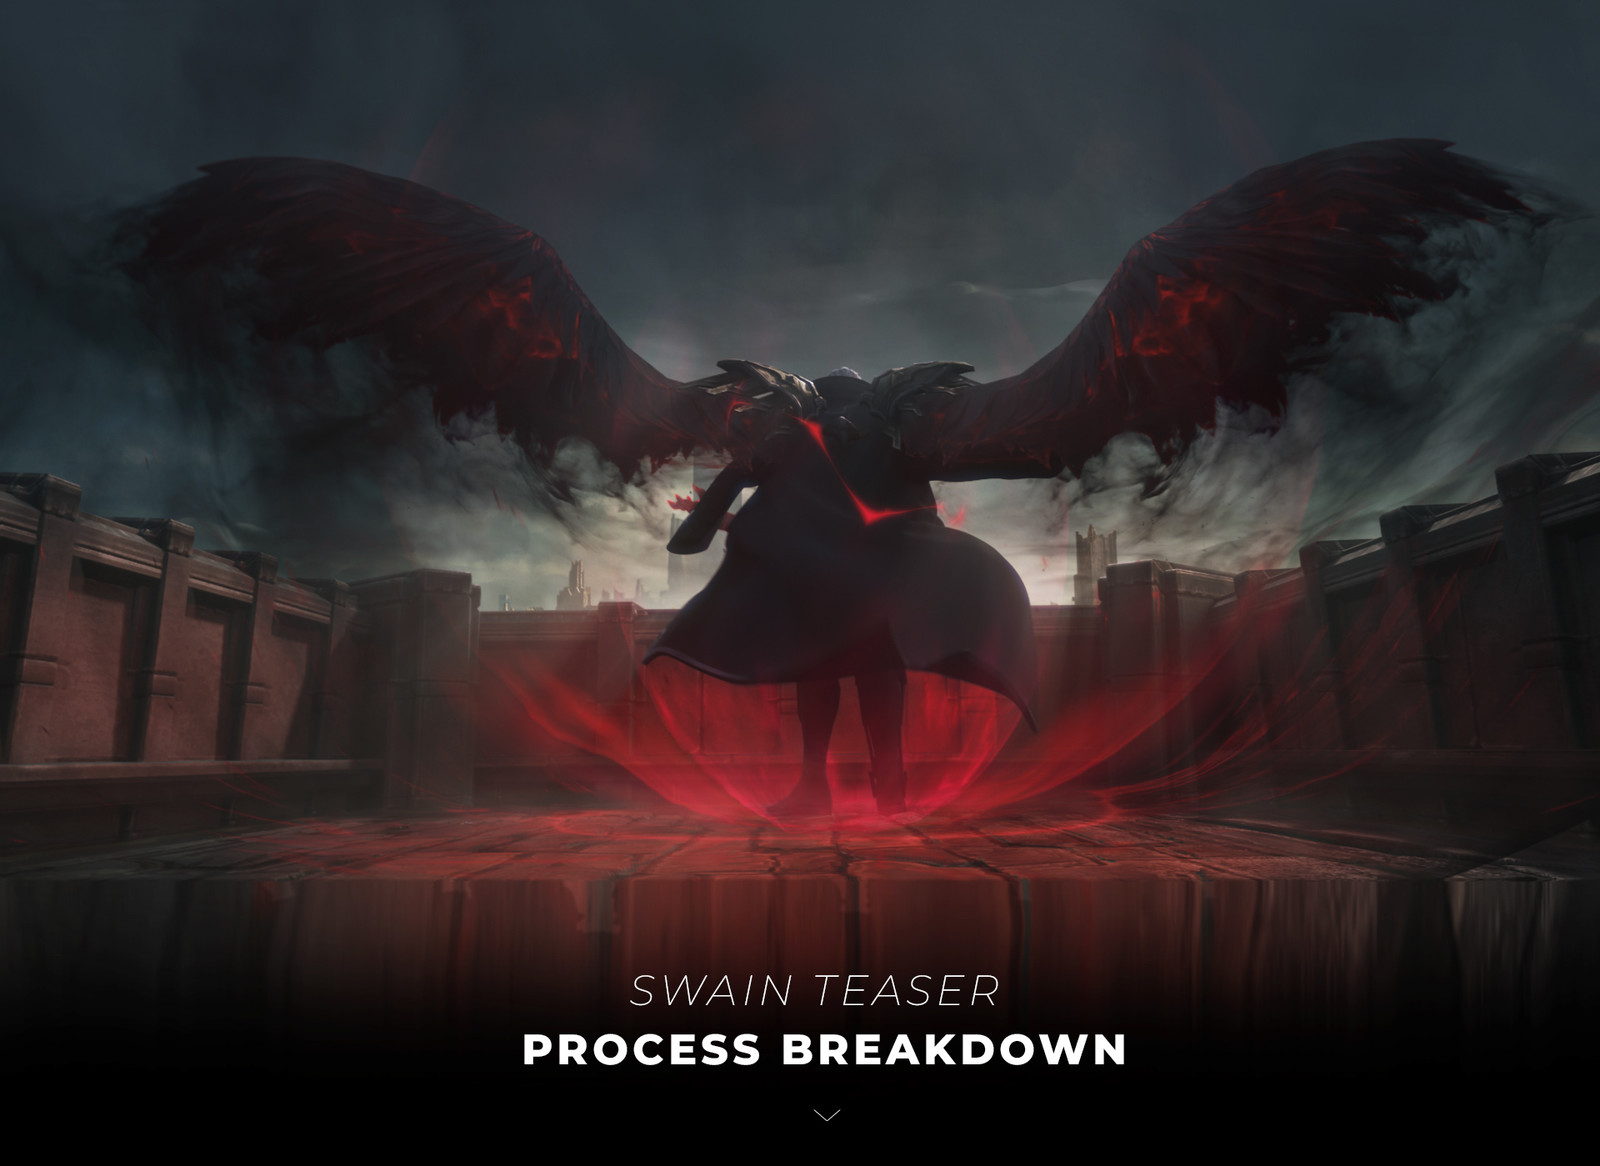 Swain deserved some kind of teaser video for his VGU relaunch. 